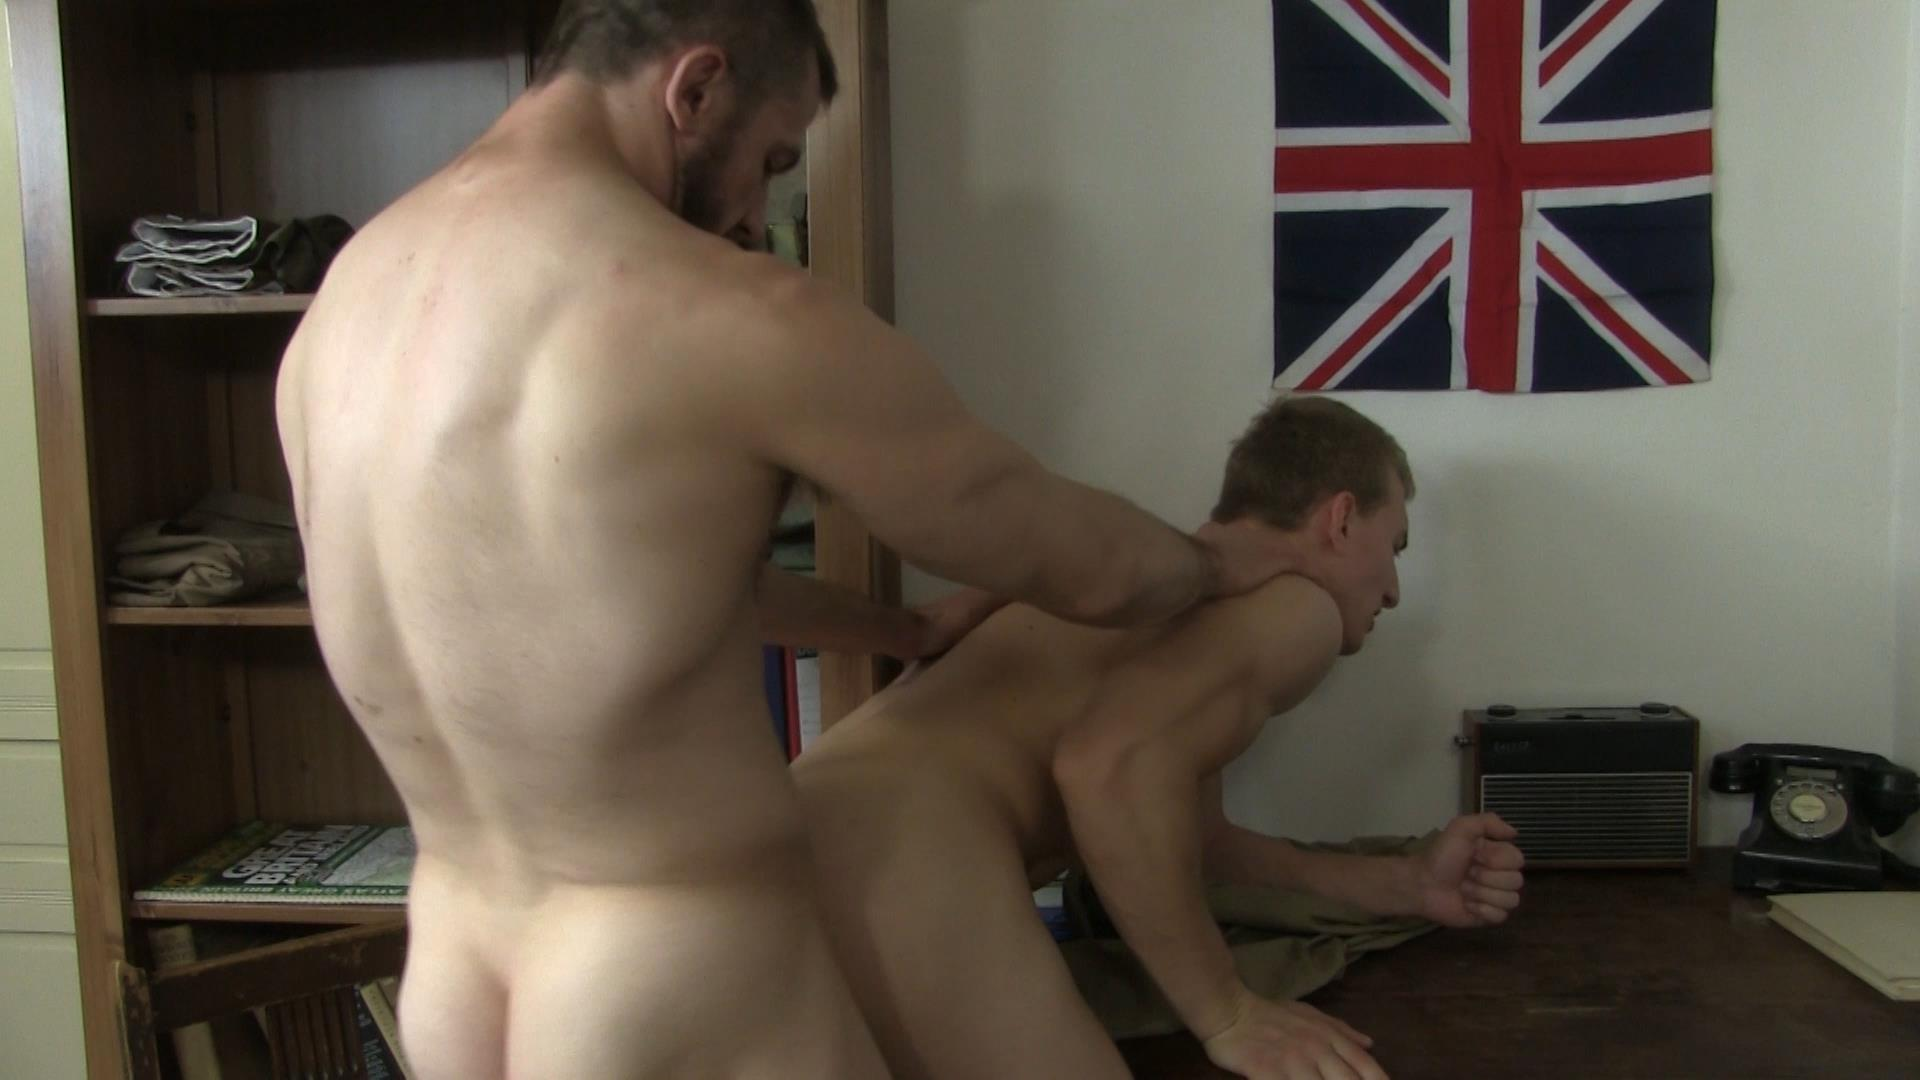 Bareback Me Daddy Eric Lenn and Ryan Torres Twink Fucked By Older man Amateur Gay Porn 21 Twink Gets Bareback Fucked By An Older Scoutmaster